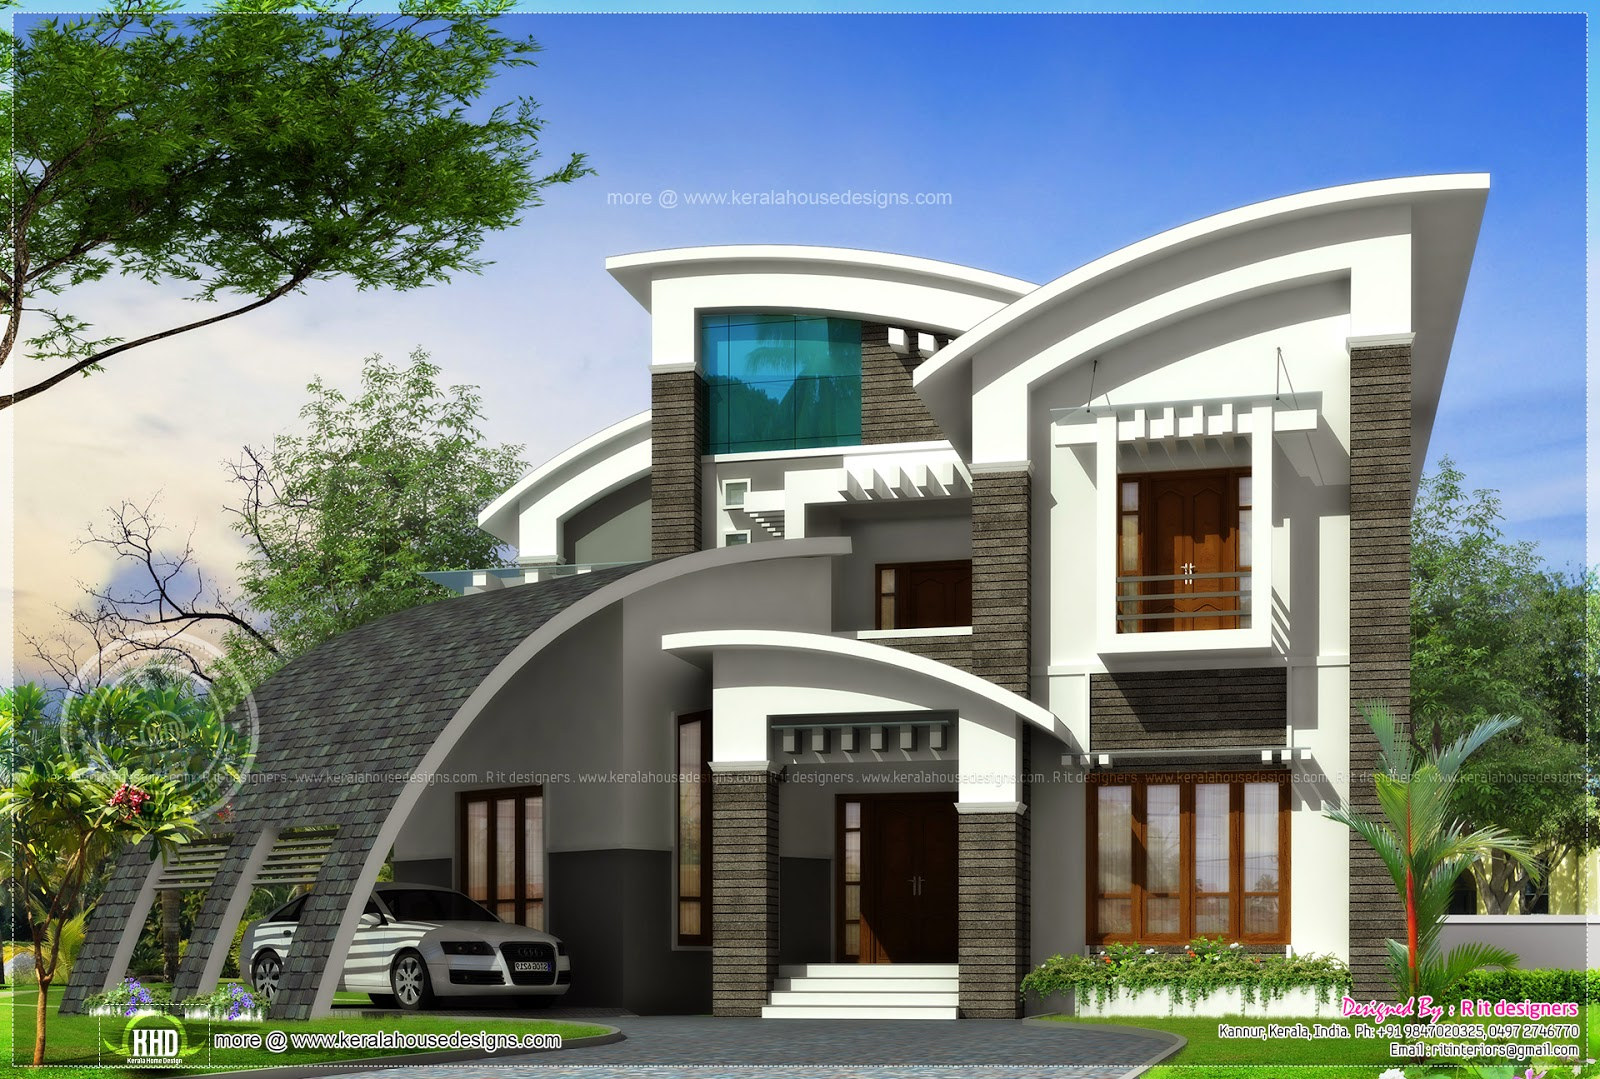 Super luxury ultra modern house design kerala home for Modern new homes